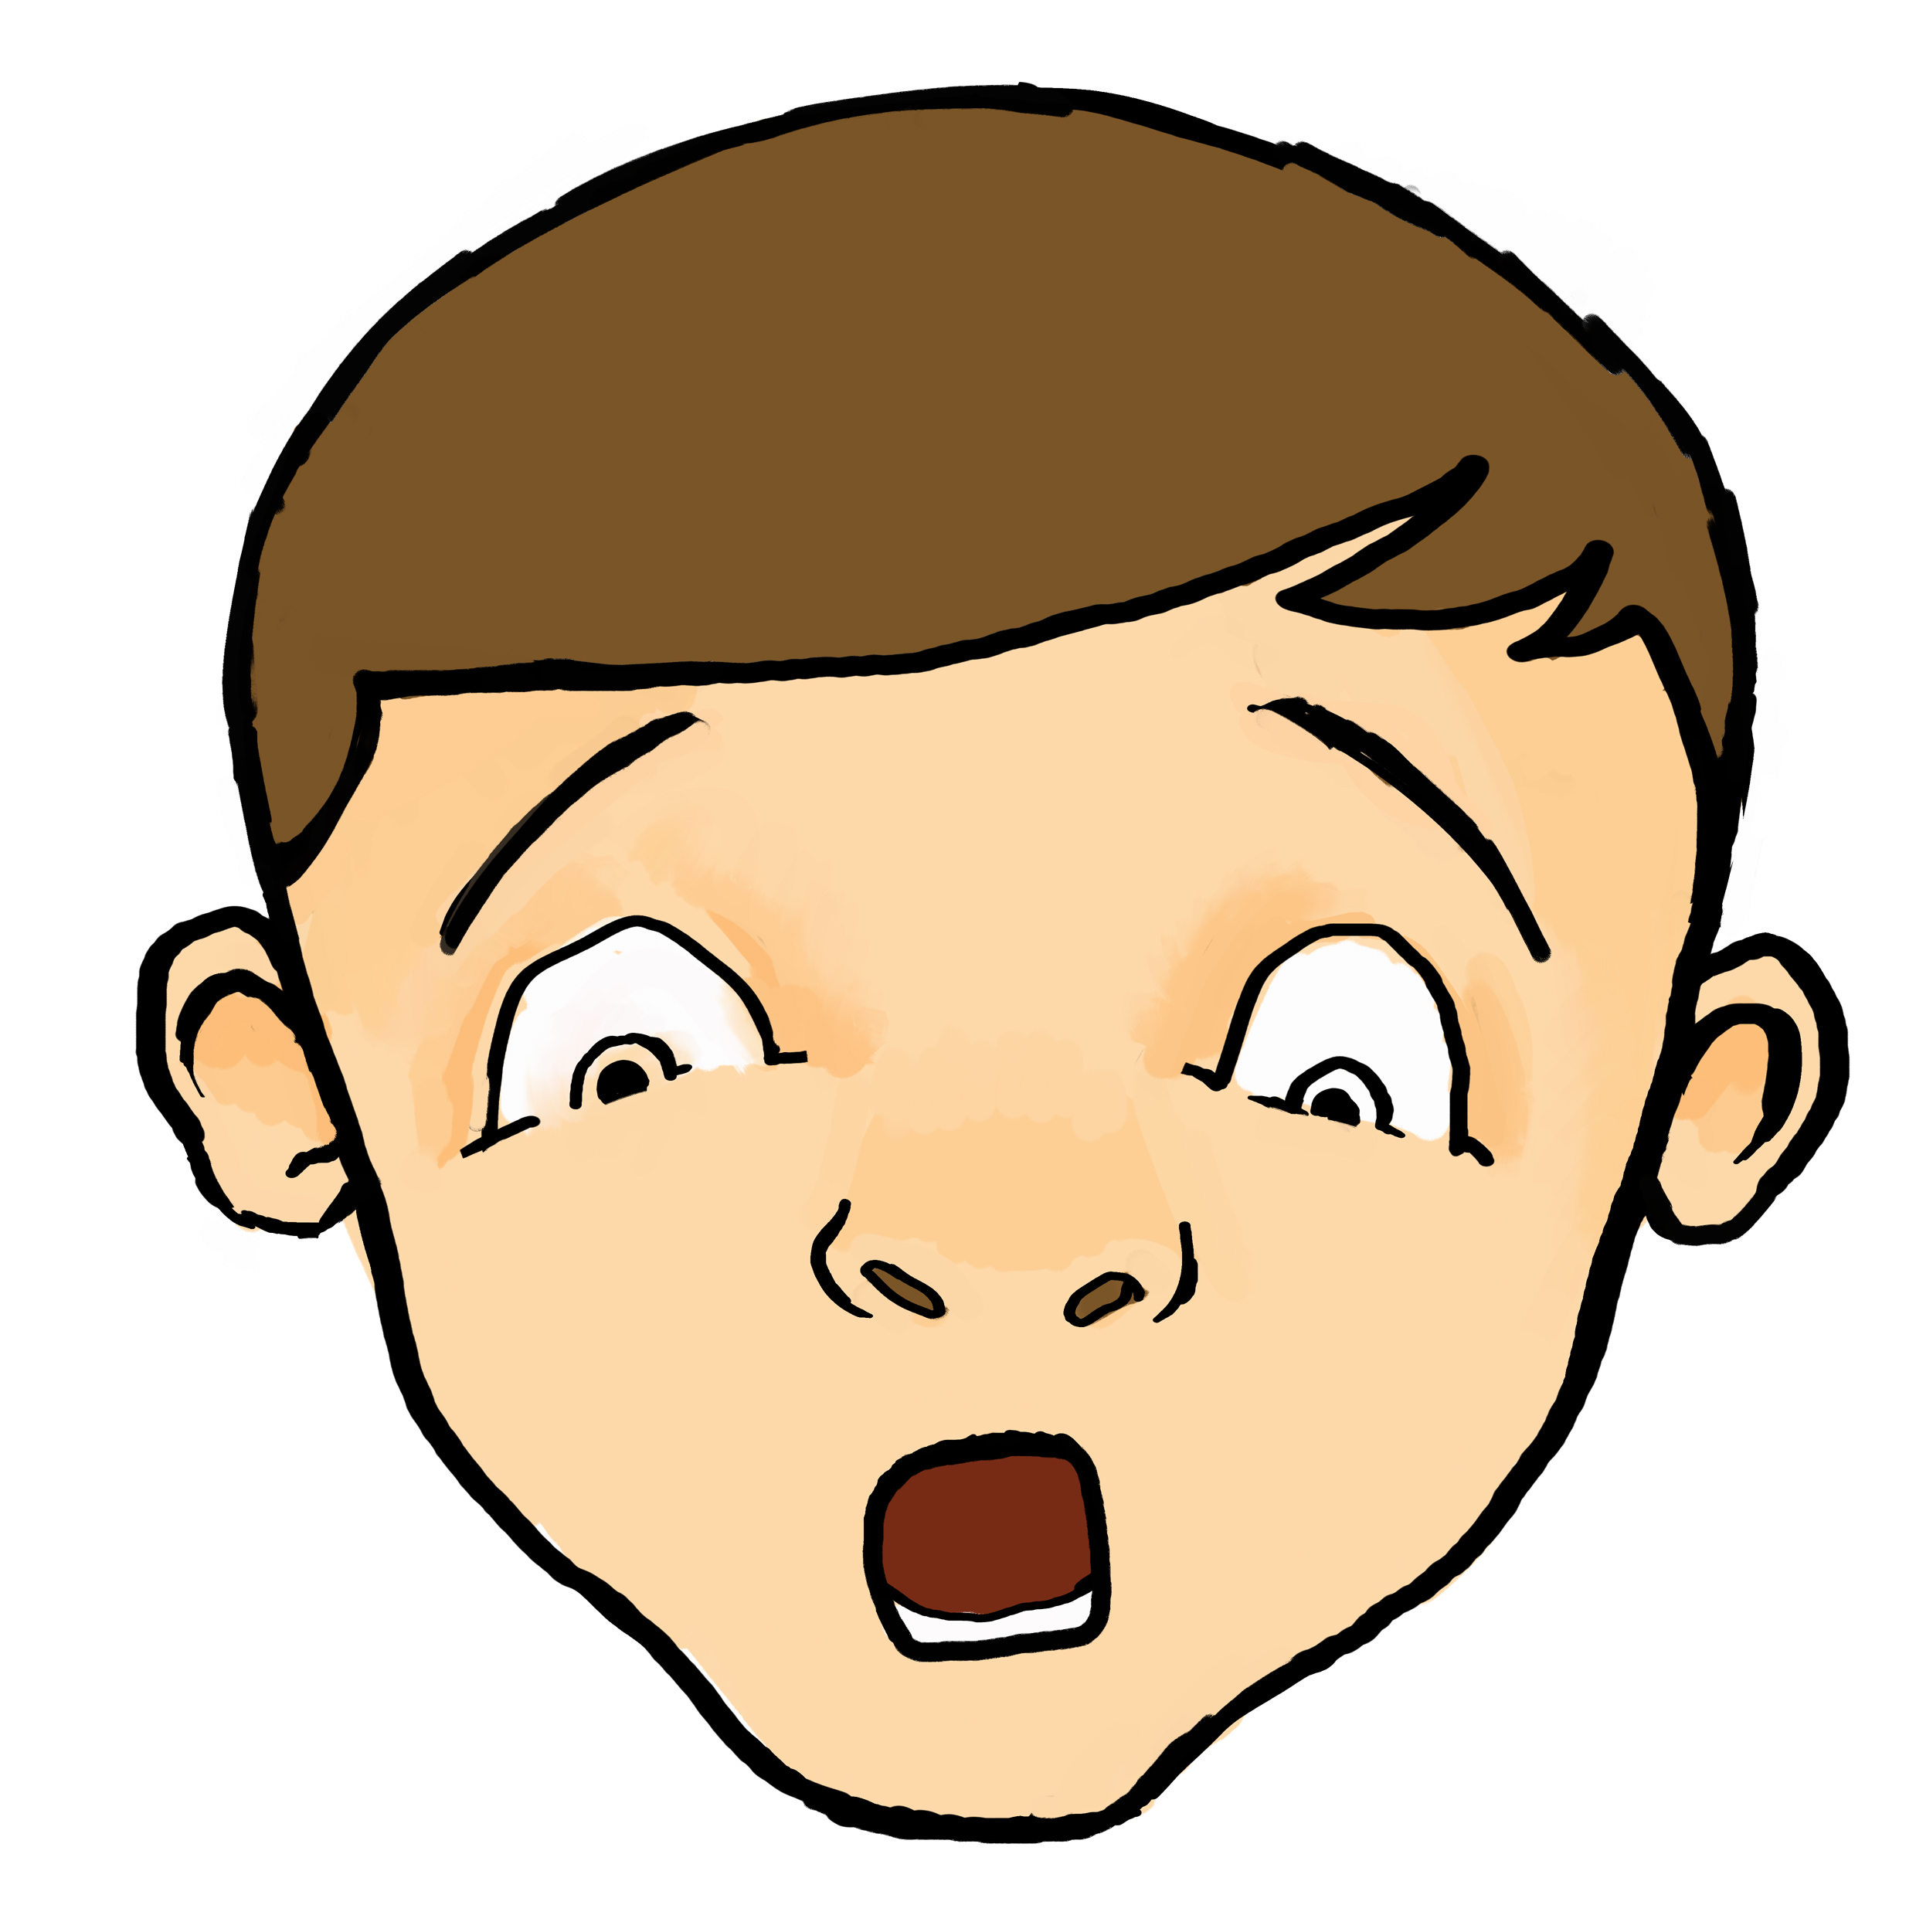 Scared Face Cliparts Free Download Clip Art.